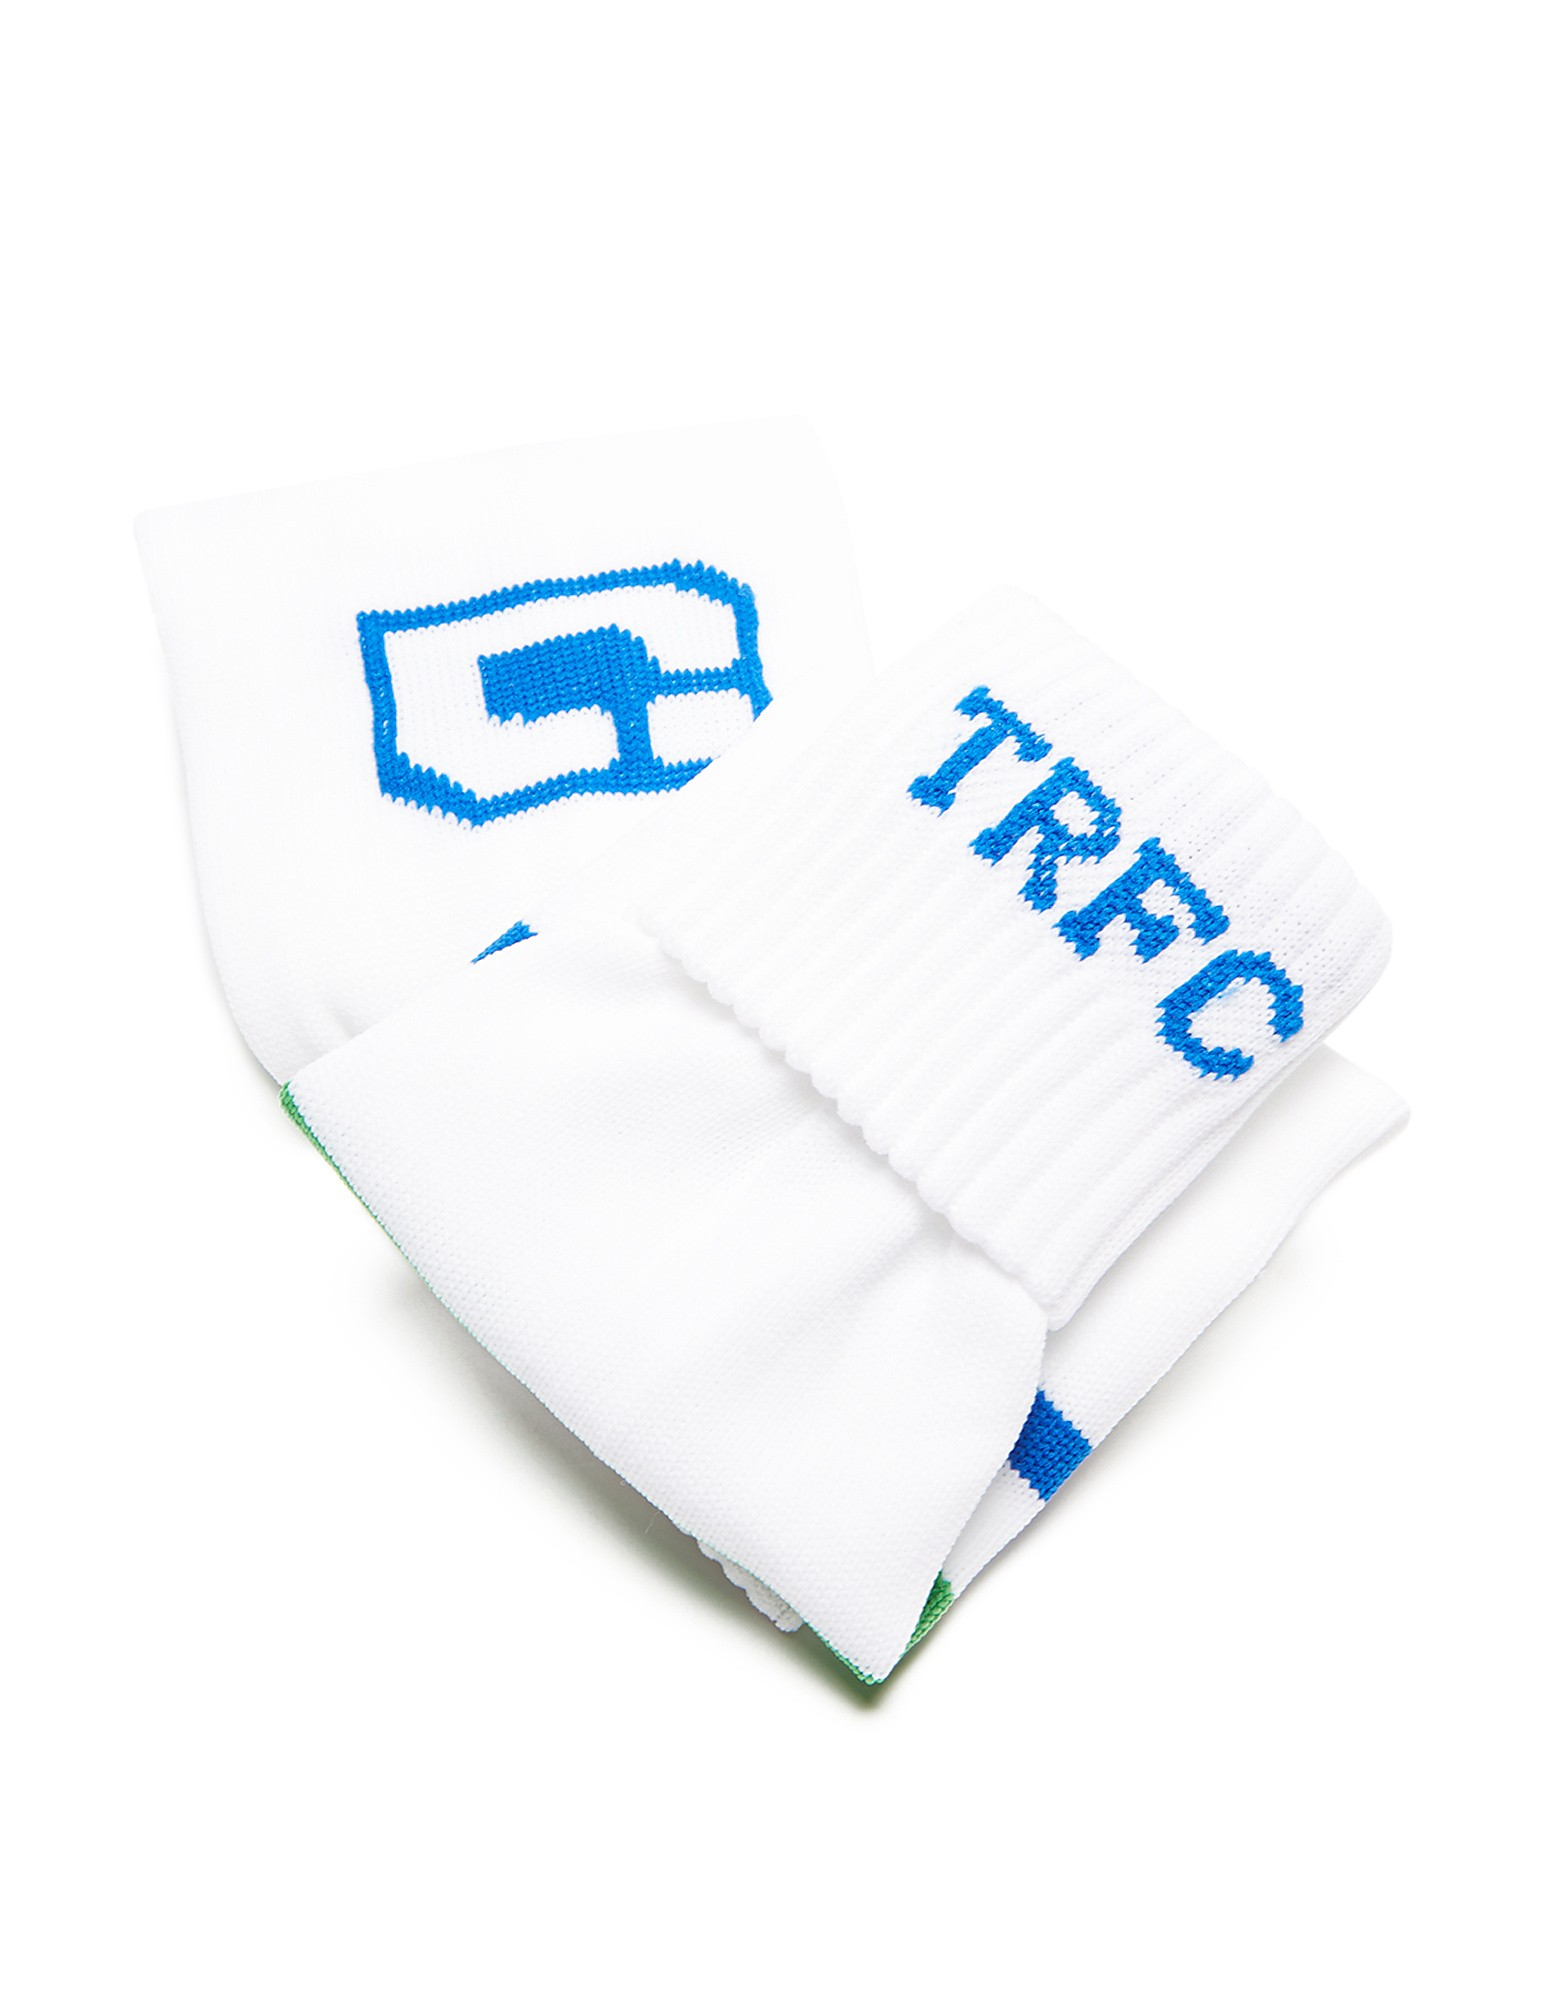 Carbrini Tranmere Rovers 2015/16 Home Socks